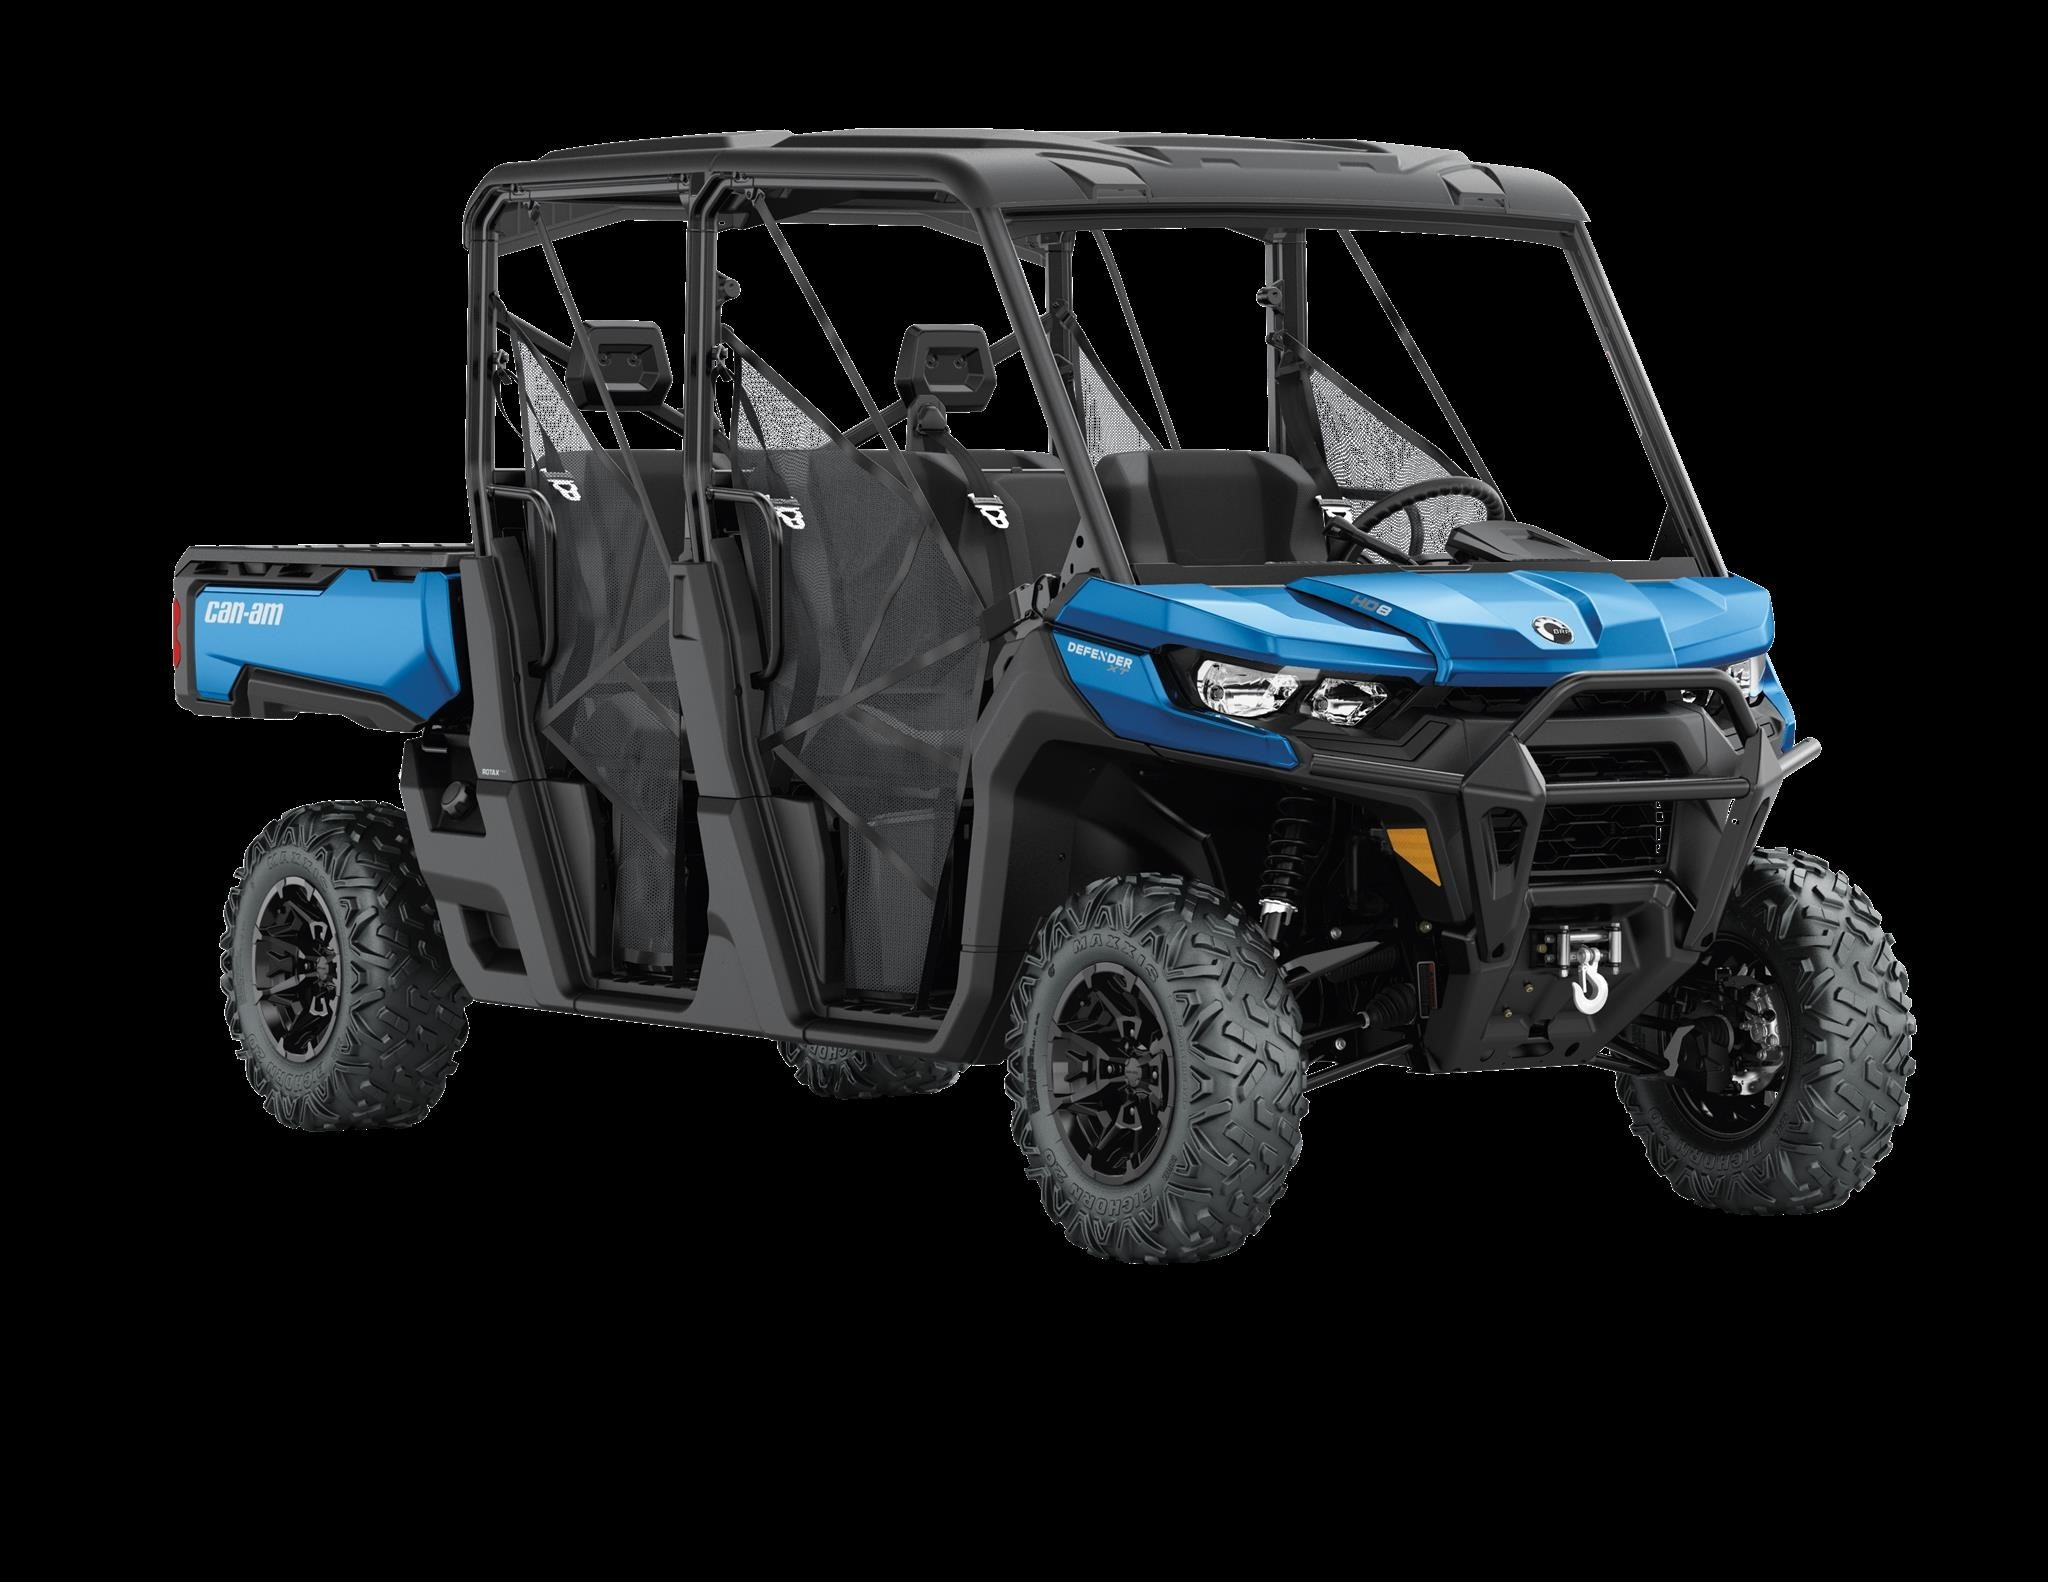 2022 Can-Am Defender Max XT HD10 ATVs and Utility Vehicle